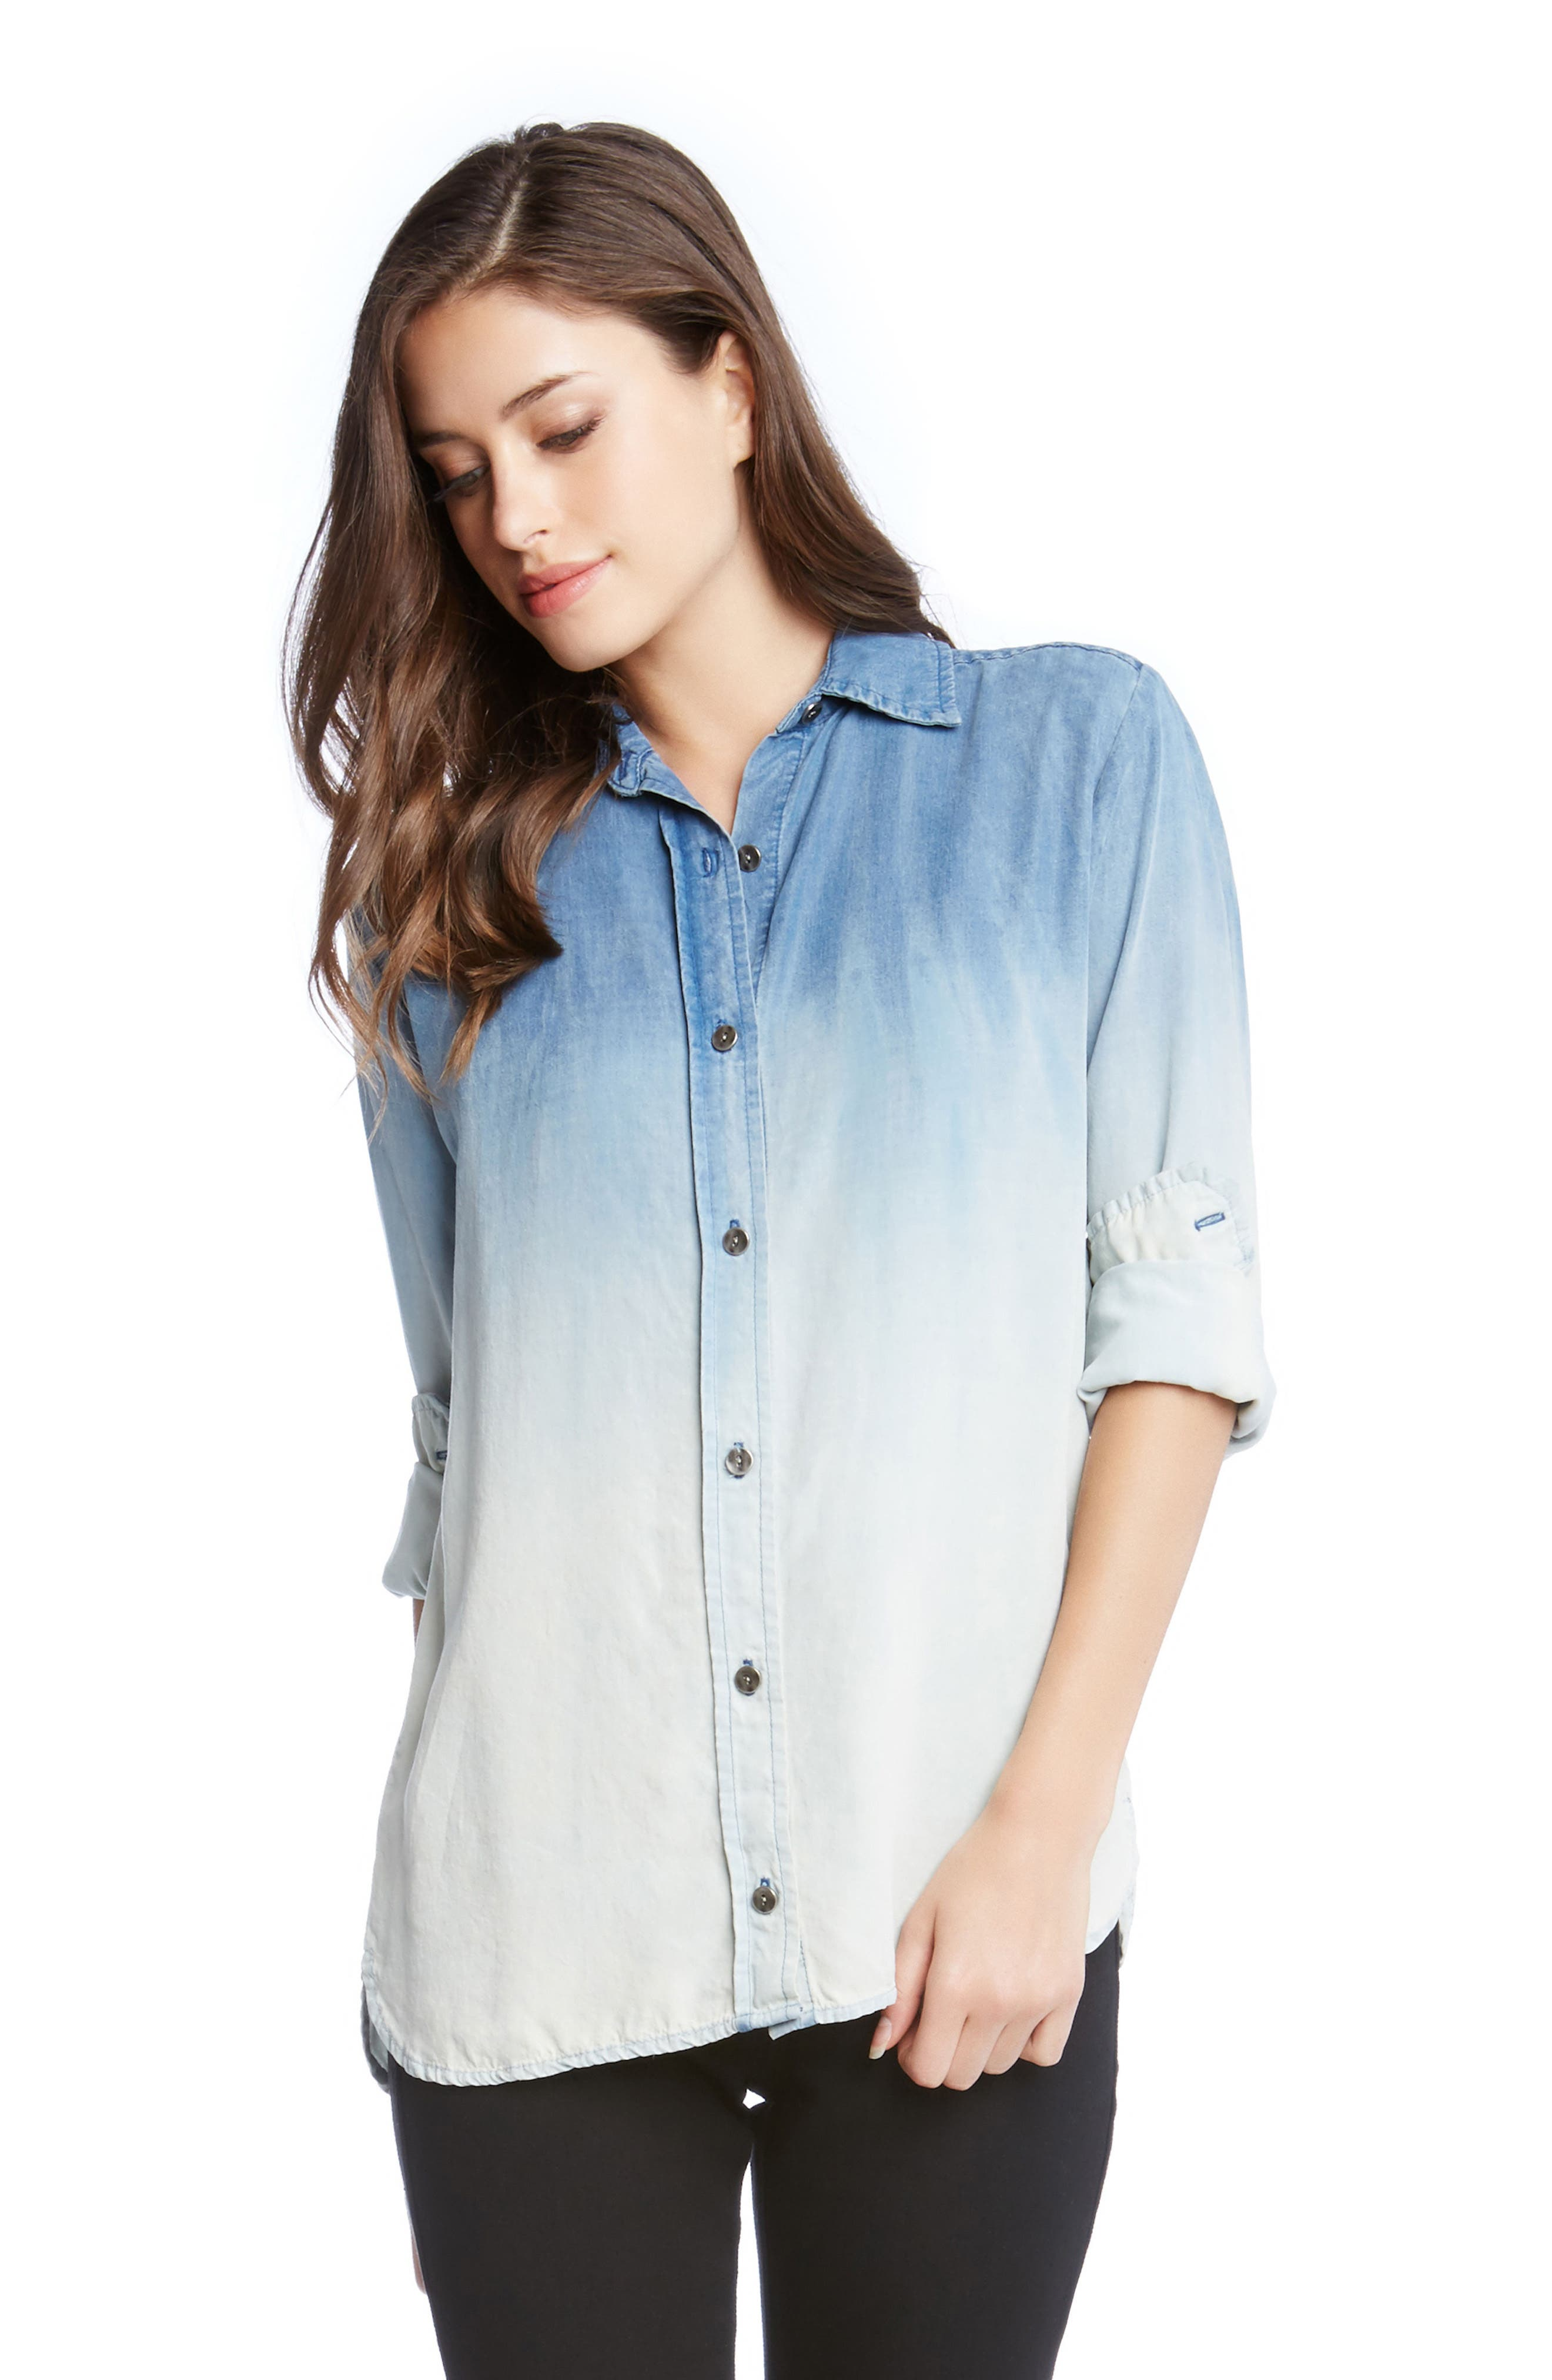 Ombré Chambray Shirt,                             Alternate thumbnail 3, color,                             Chambray